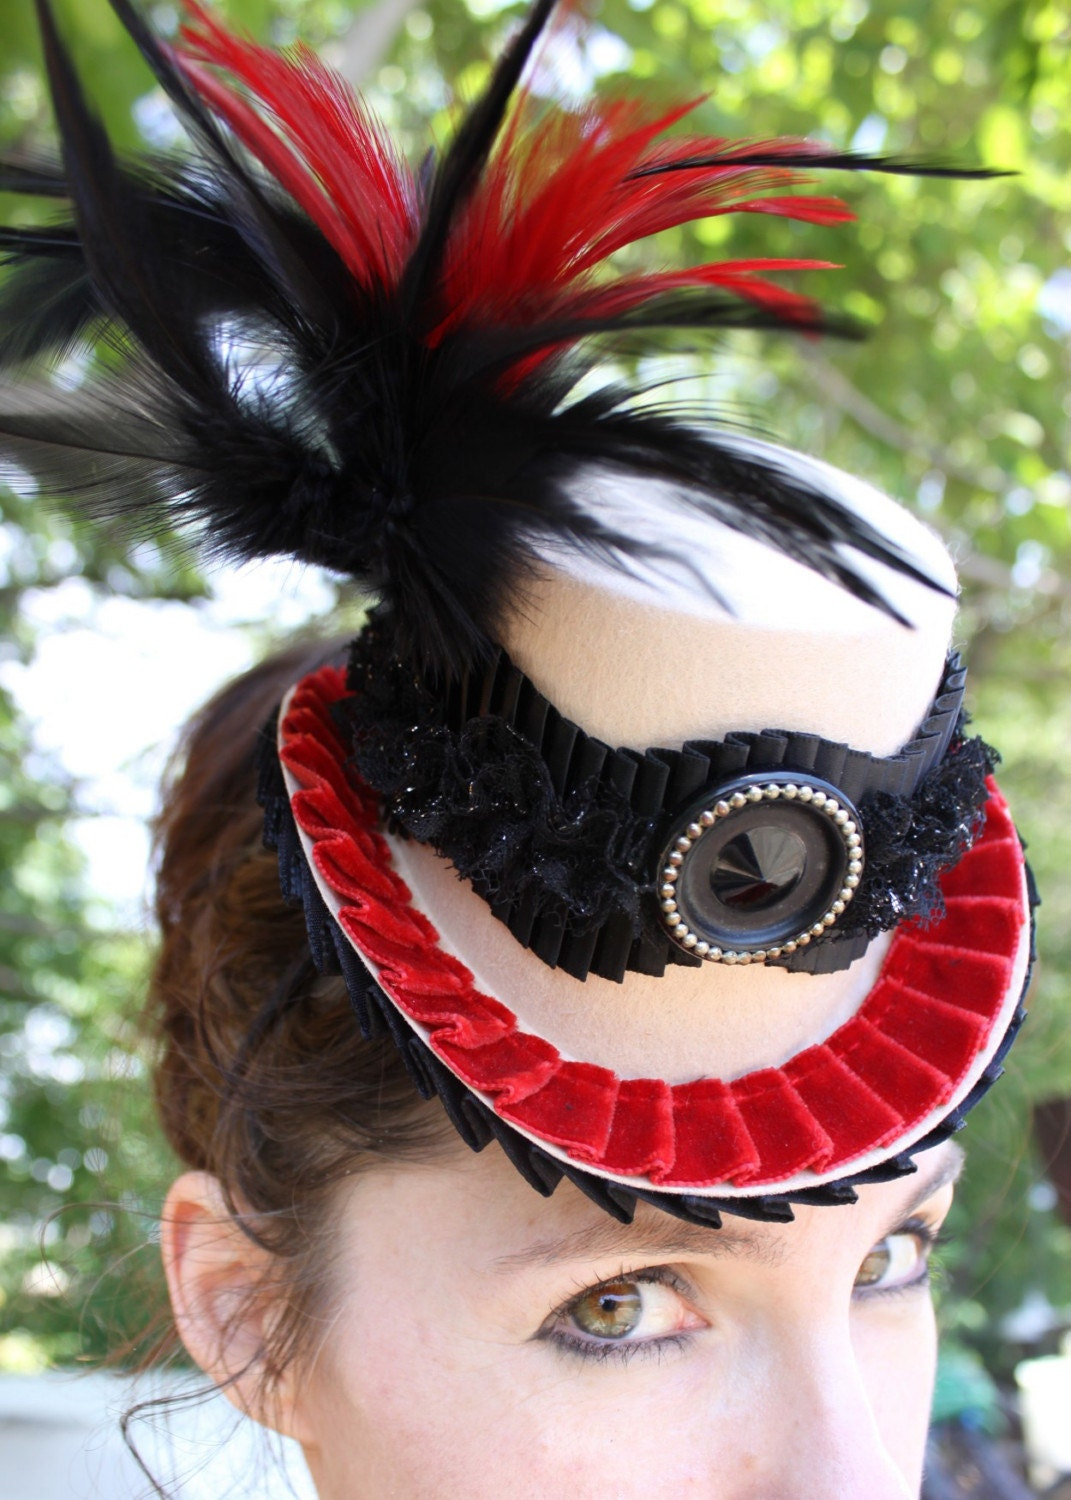 TODDIE TOPPER - Cream Mini Top Hat w/ Red Velvet Trim and Box Pleated Sparkle Trim, Red and Black Feathers Topped with Vintage Button